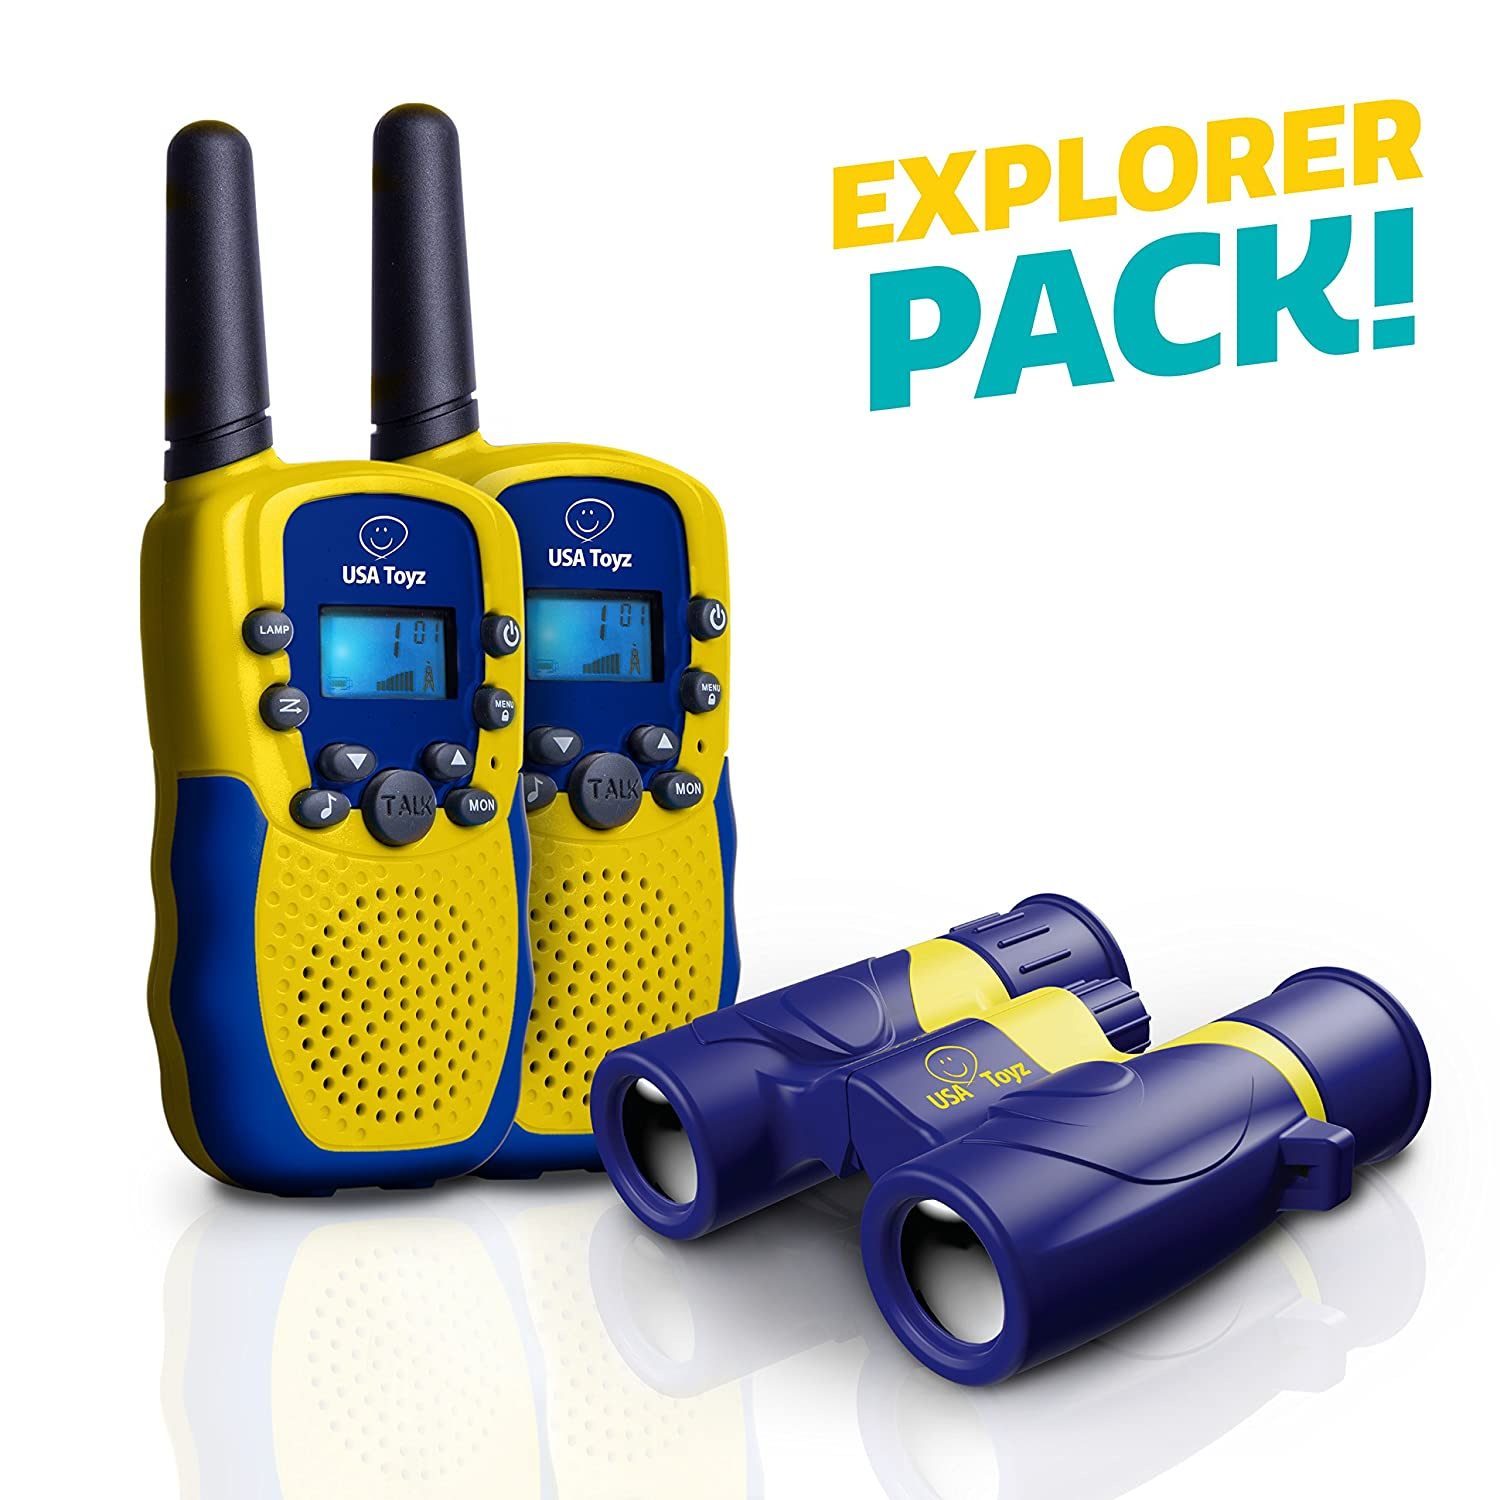 USA Toyz Kids Walkie Talkies and Binoculars